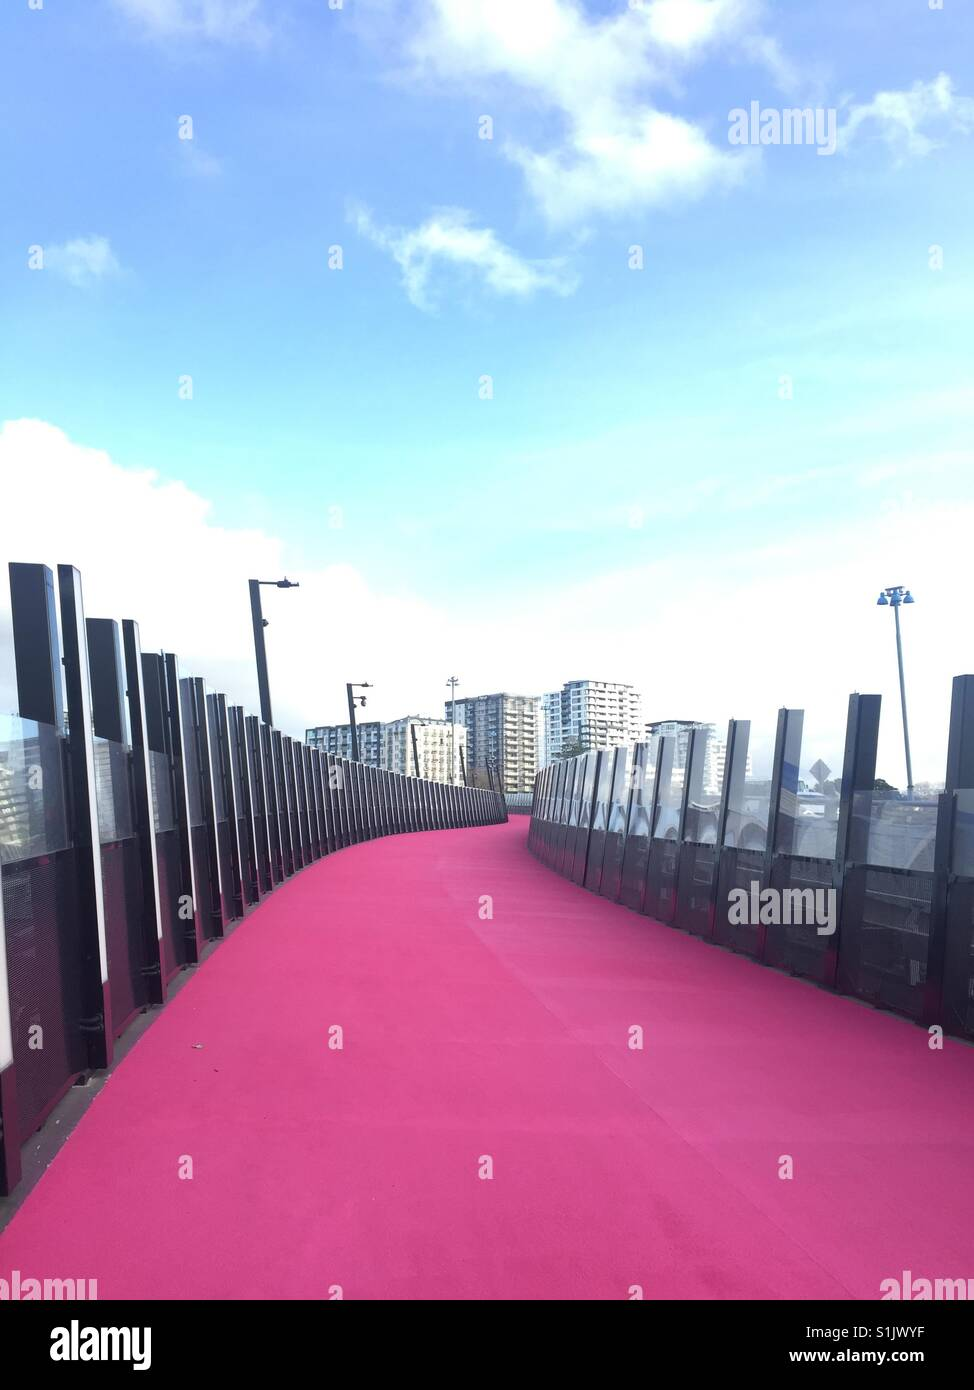 Pink road at Auckland CBD, New Zealand - Stock Image